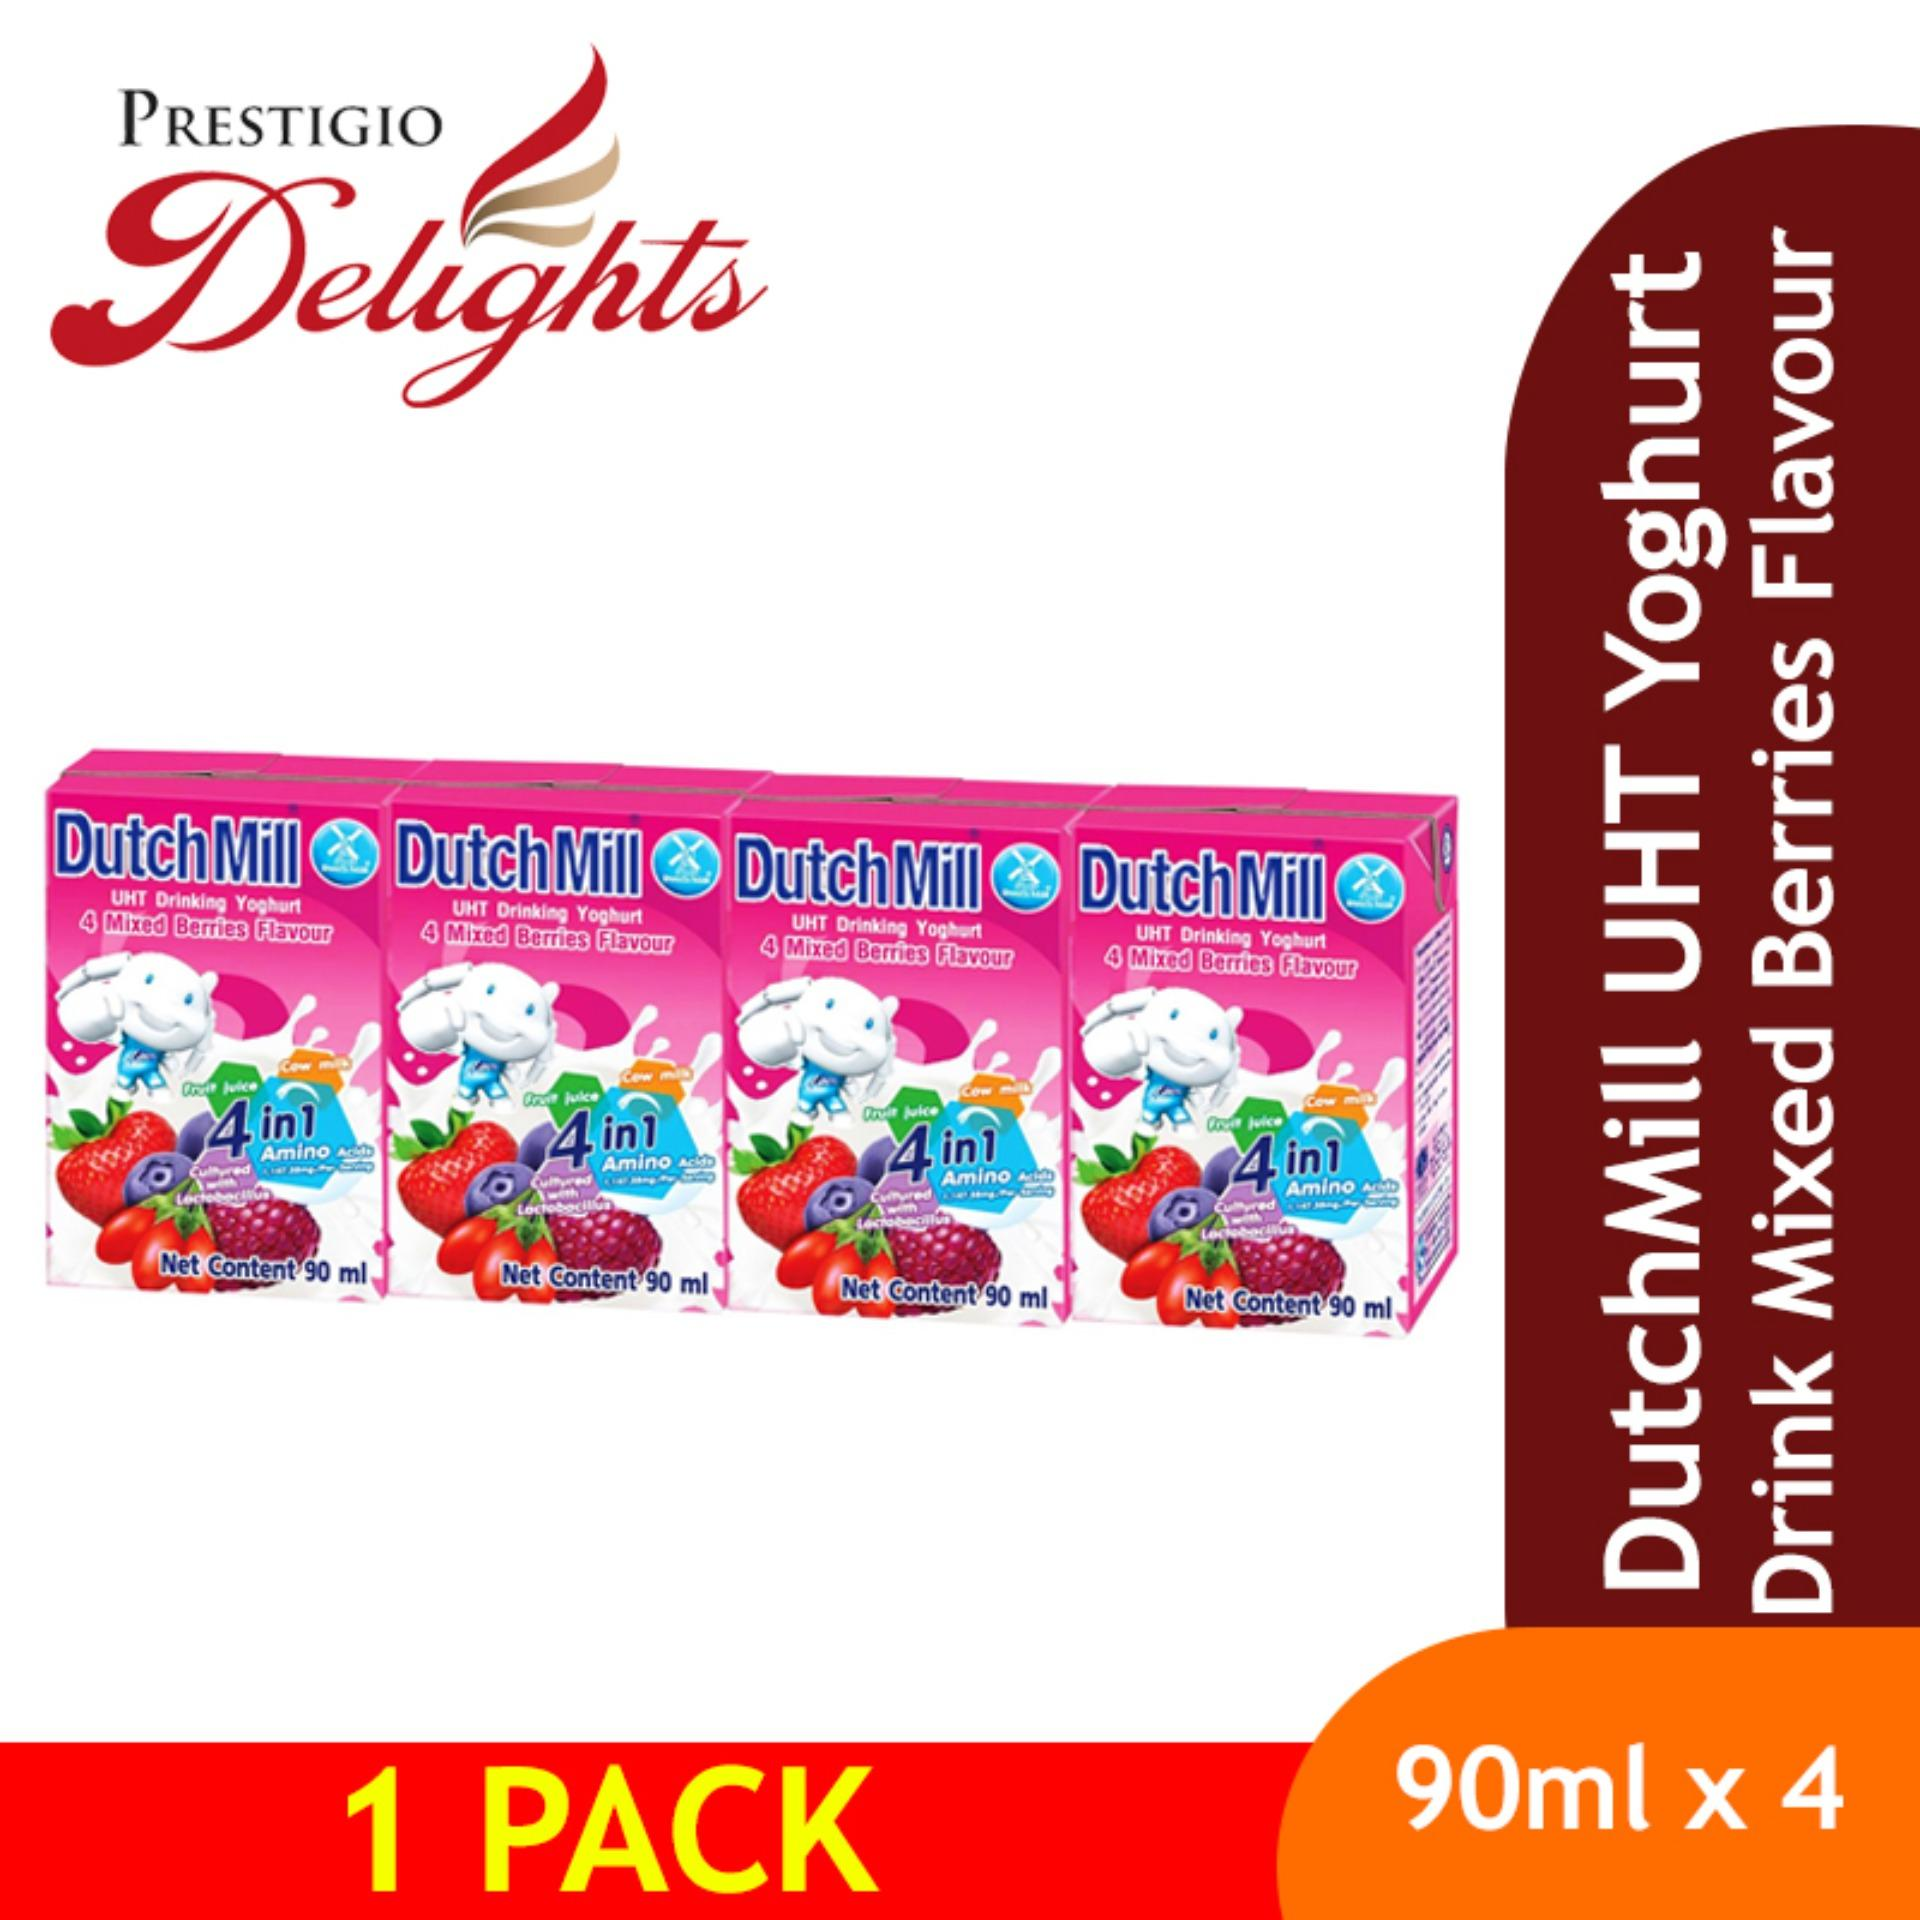 Dutchmill Uht Yoghurt Drink Mixed Berries Flavour By Prestigio Delights.